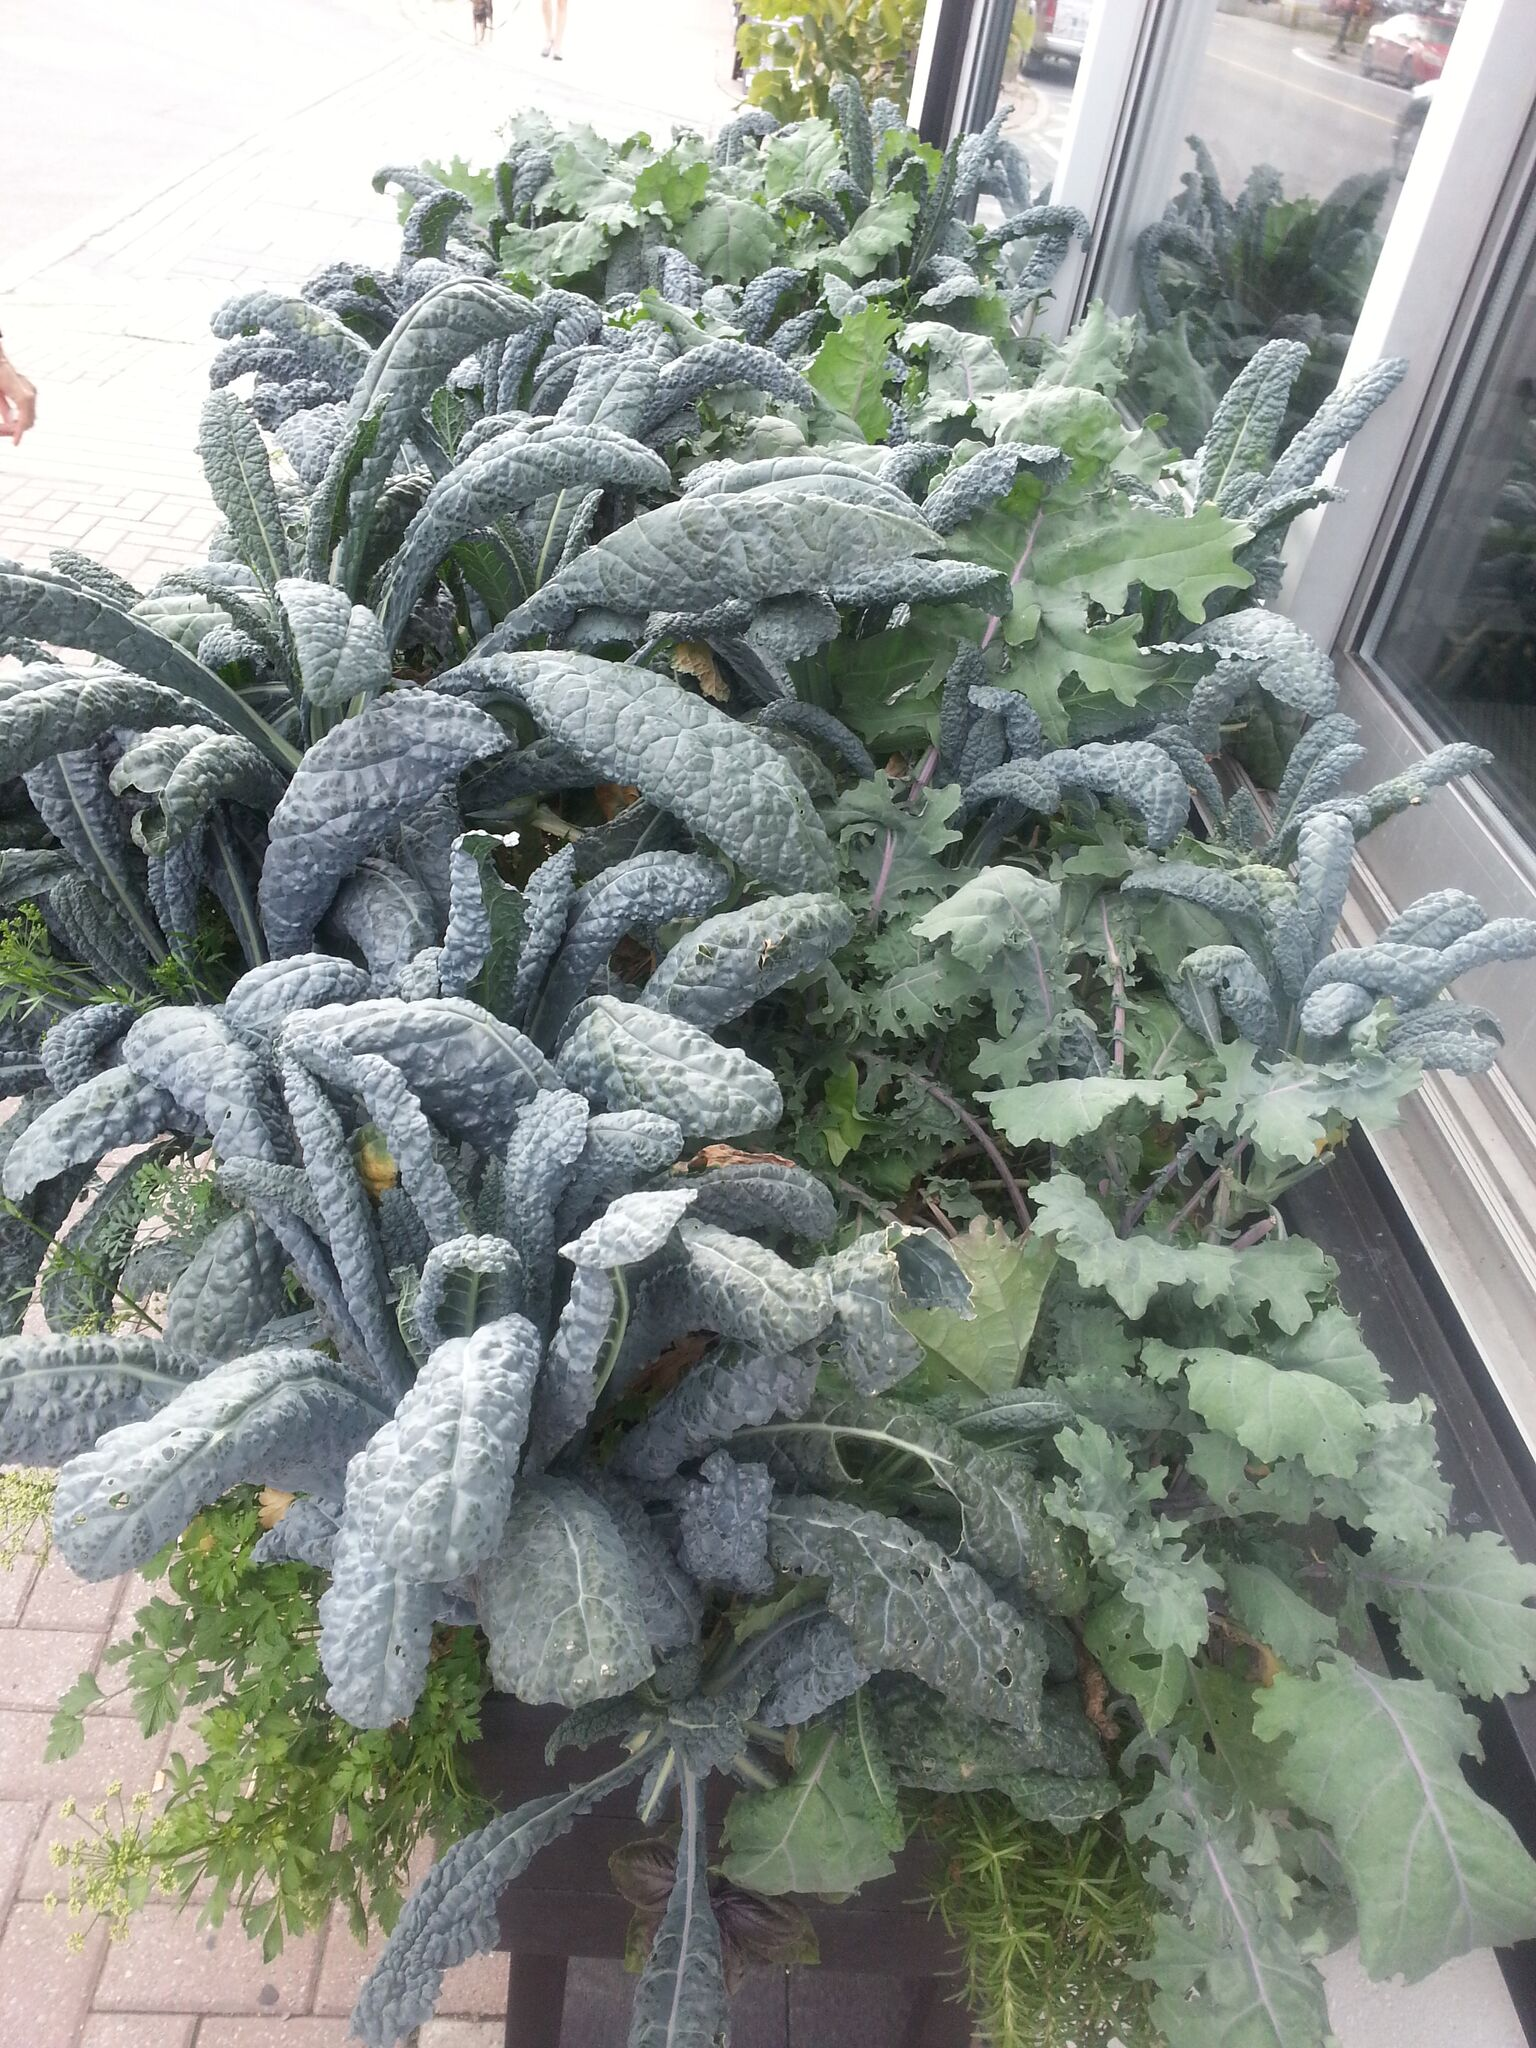 Two kinds of kale growing in a planter on a commercial street in Ottawa, Canada.